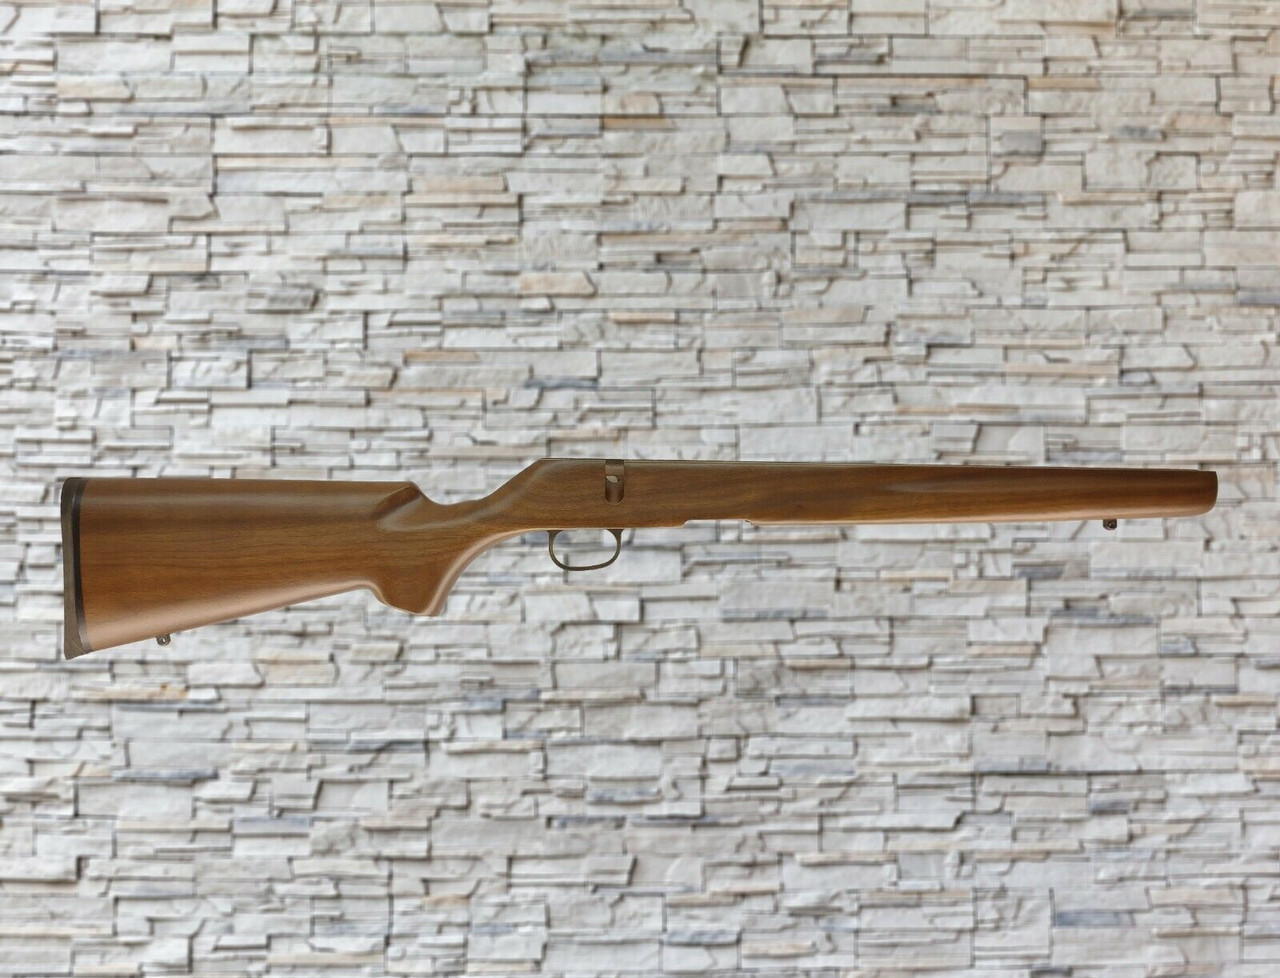 Boyds Classic Walnut Stock for Savage B Series Factory Tapered Barrel Rifle